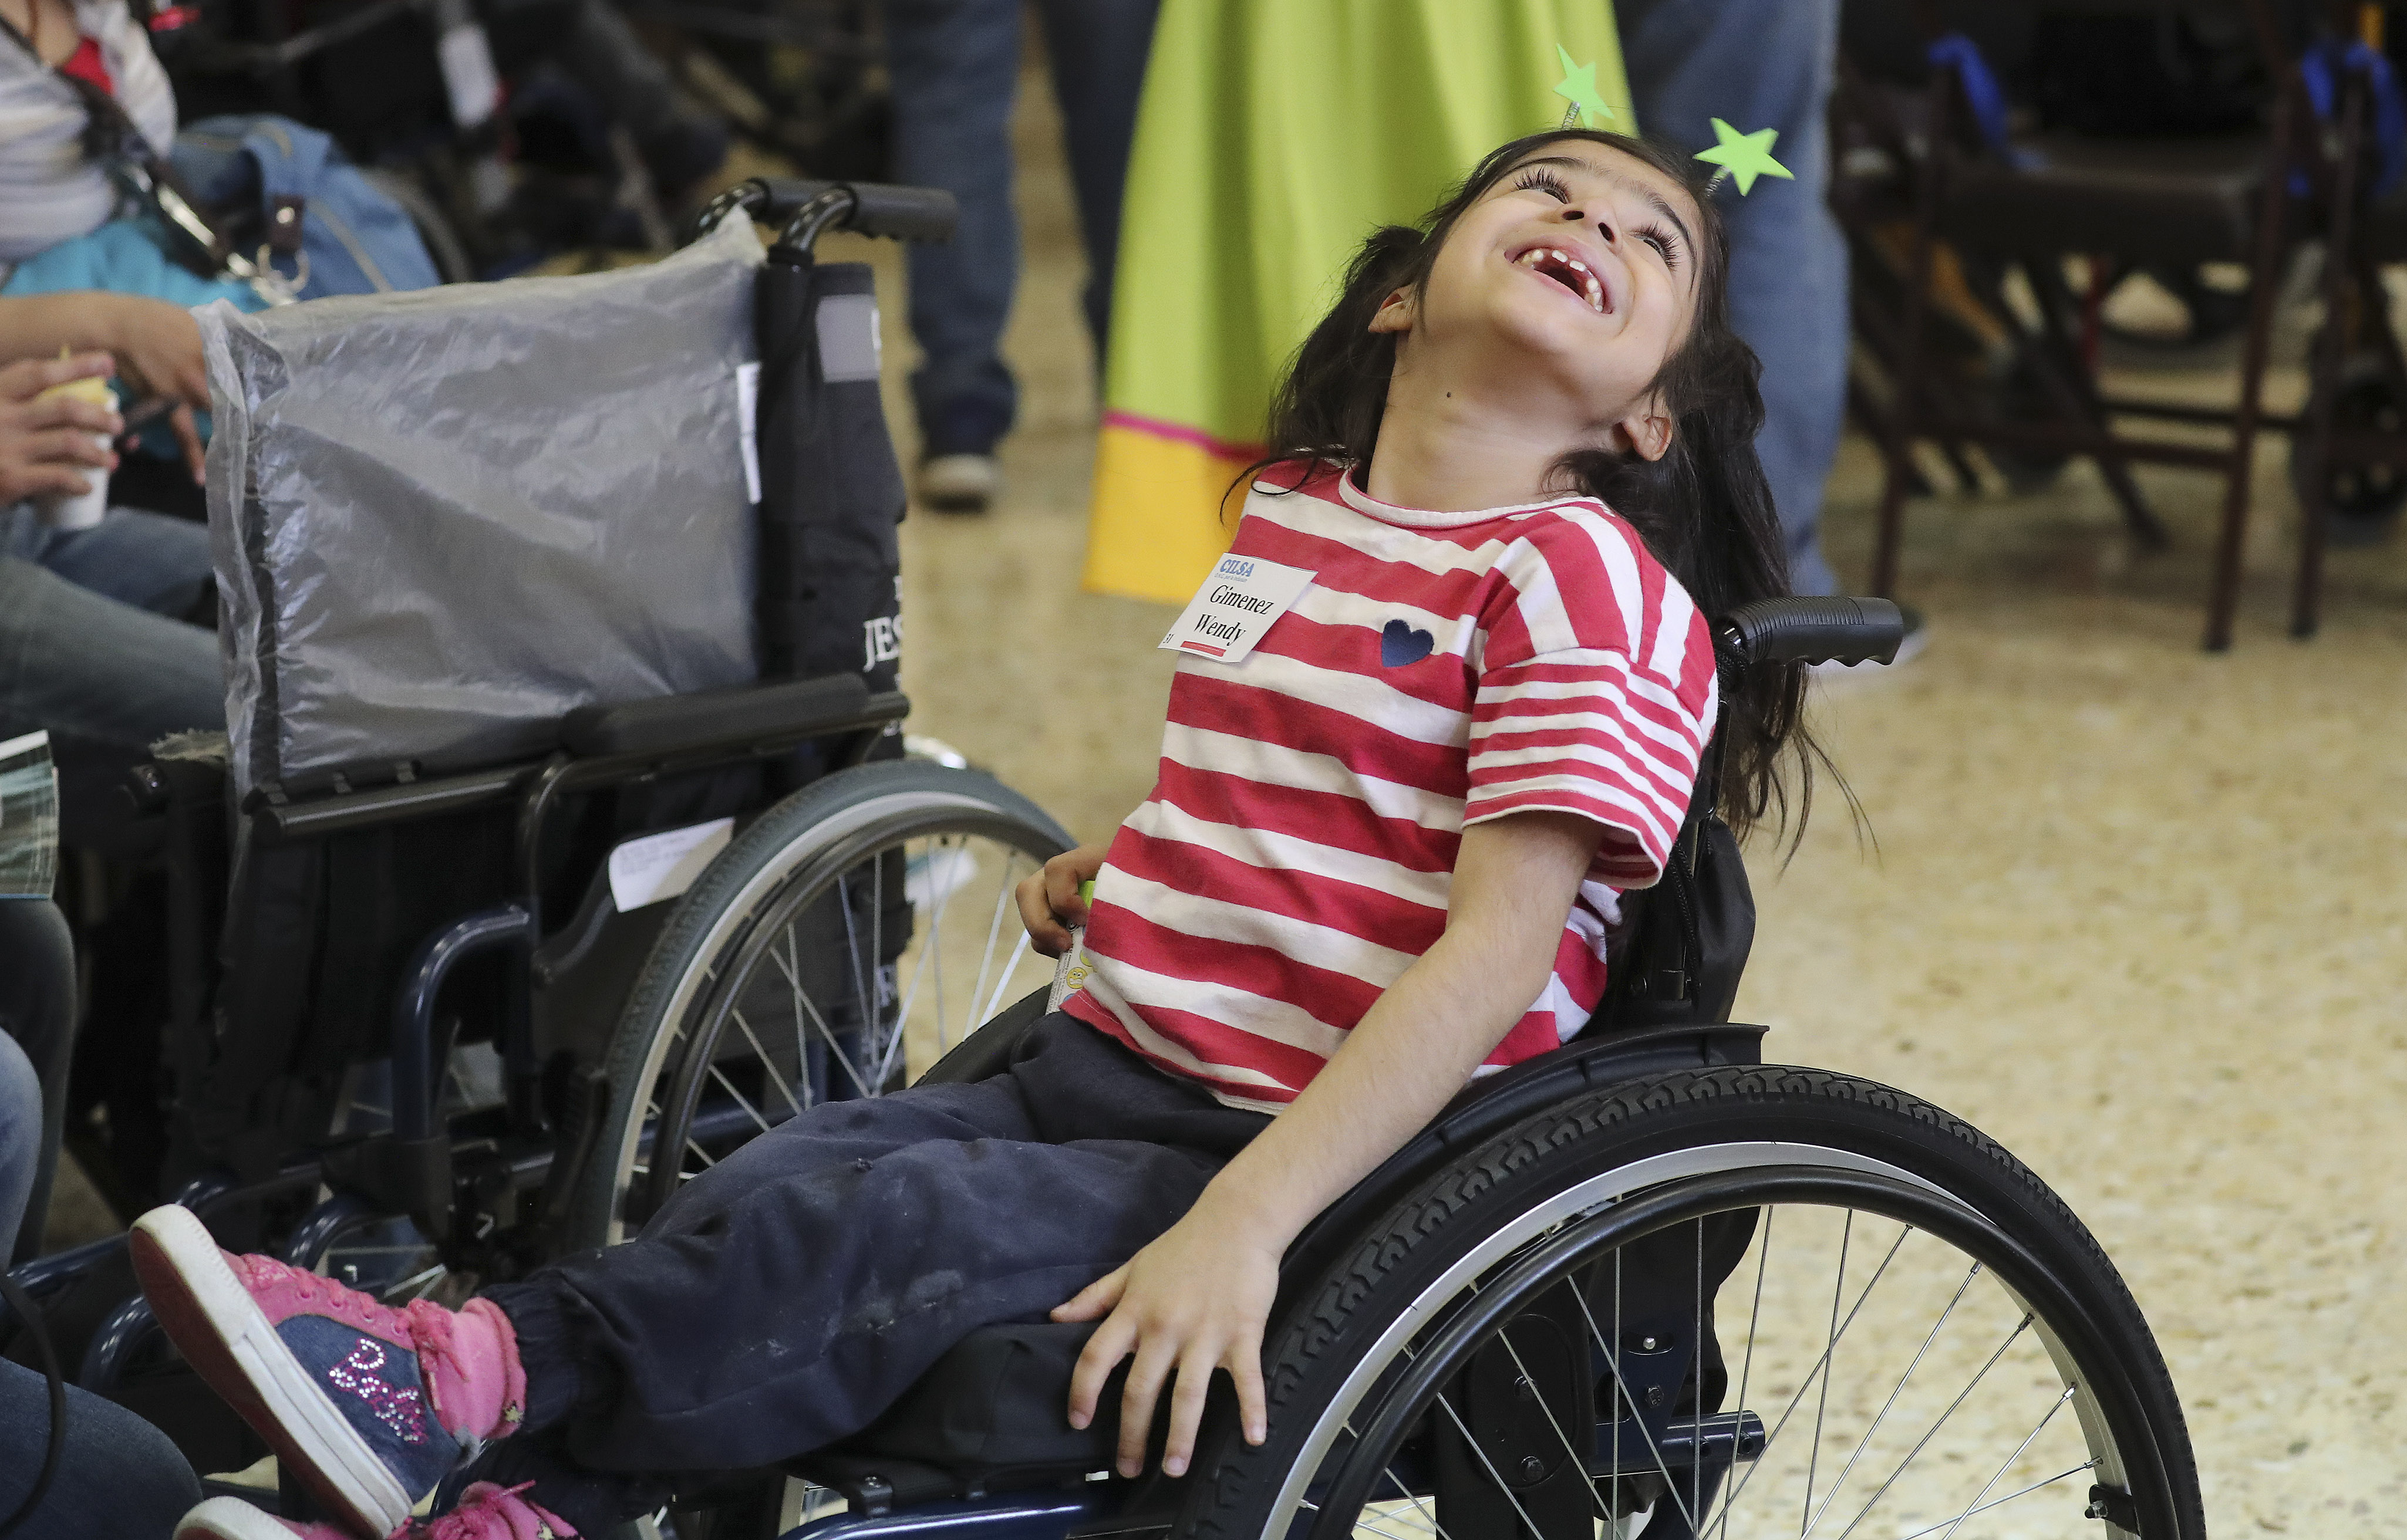 Wendy Gimenez enjoys her new wheelchair as Latter-day Saint Charities donated wheelchairs to recipients at the Villa Urquiza Ward meetinghouse in Buenos Aires, Argentina, on Wednesday, Aug. 28, 2019.